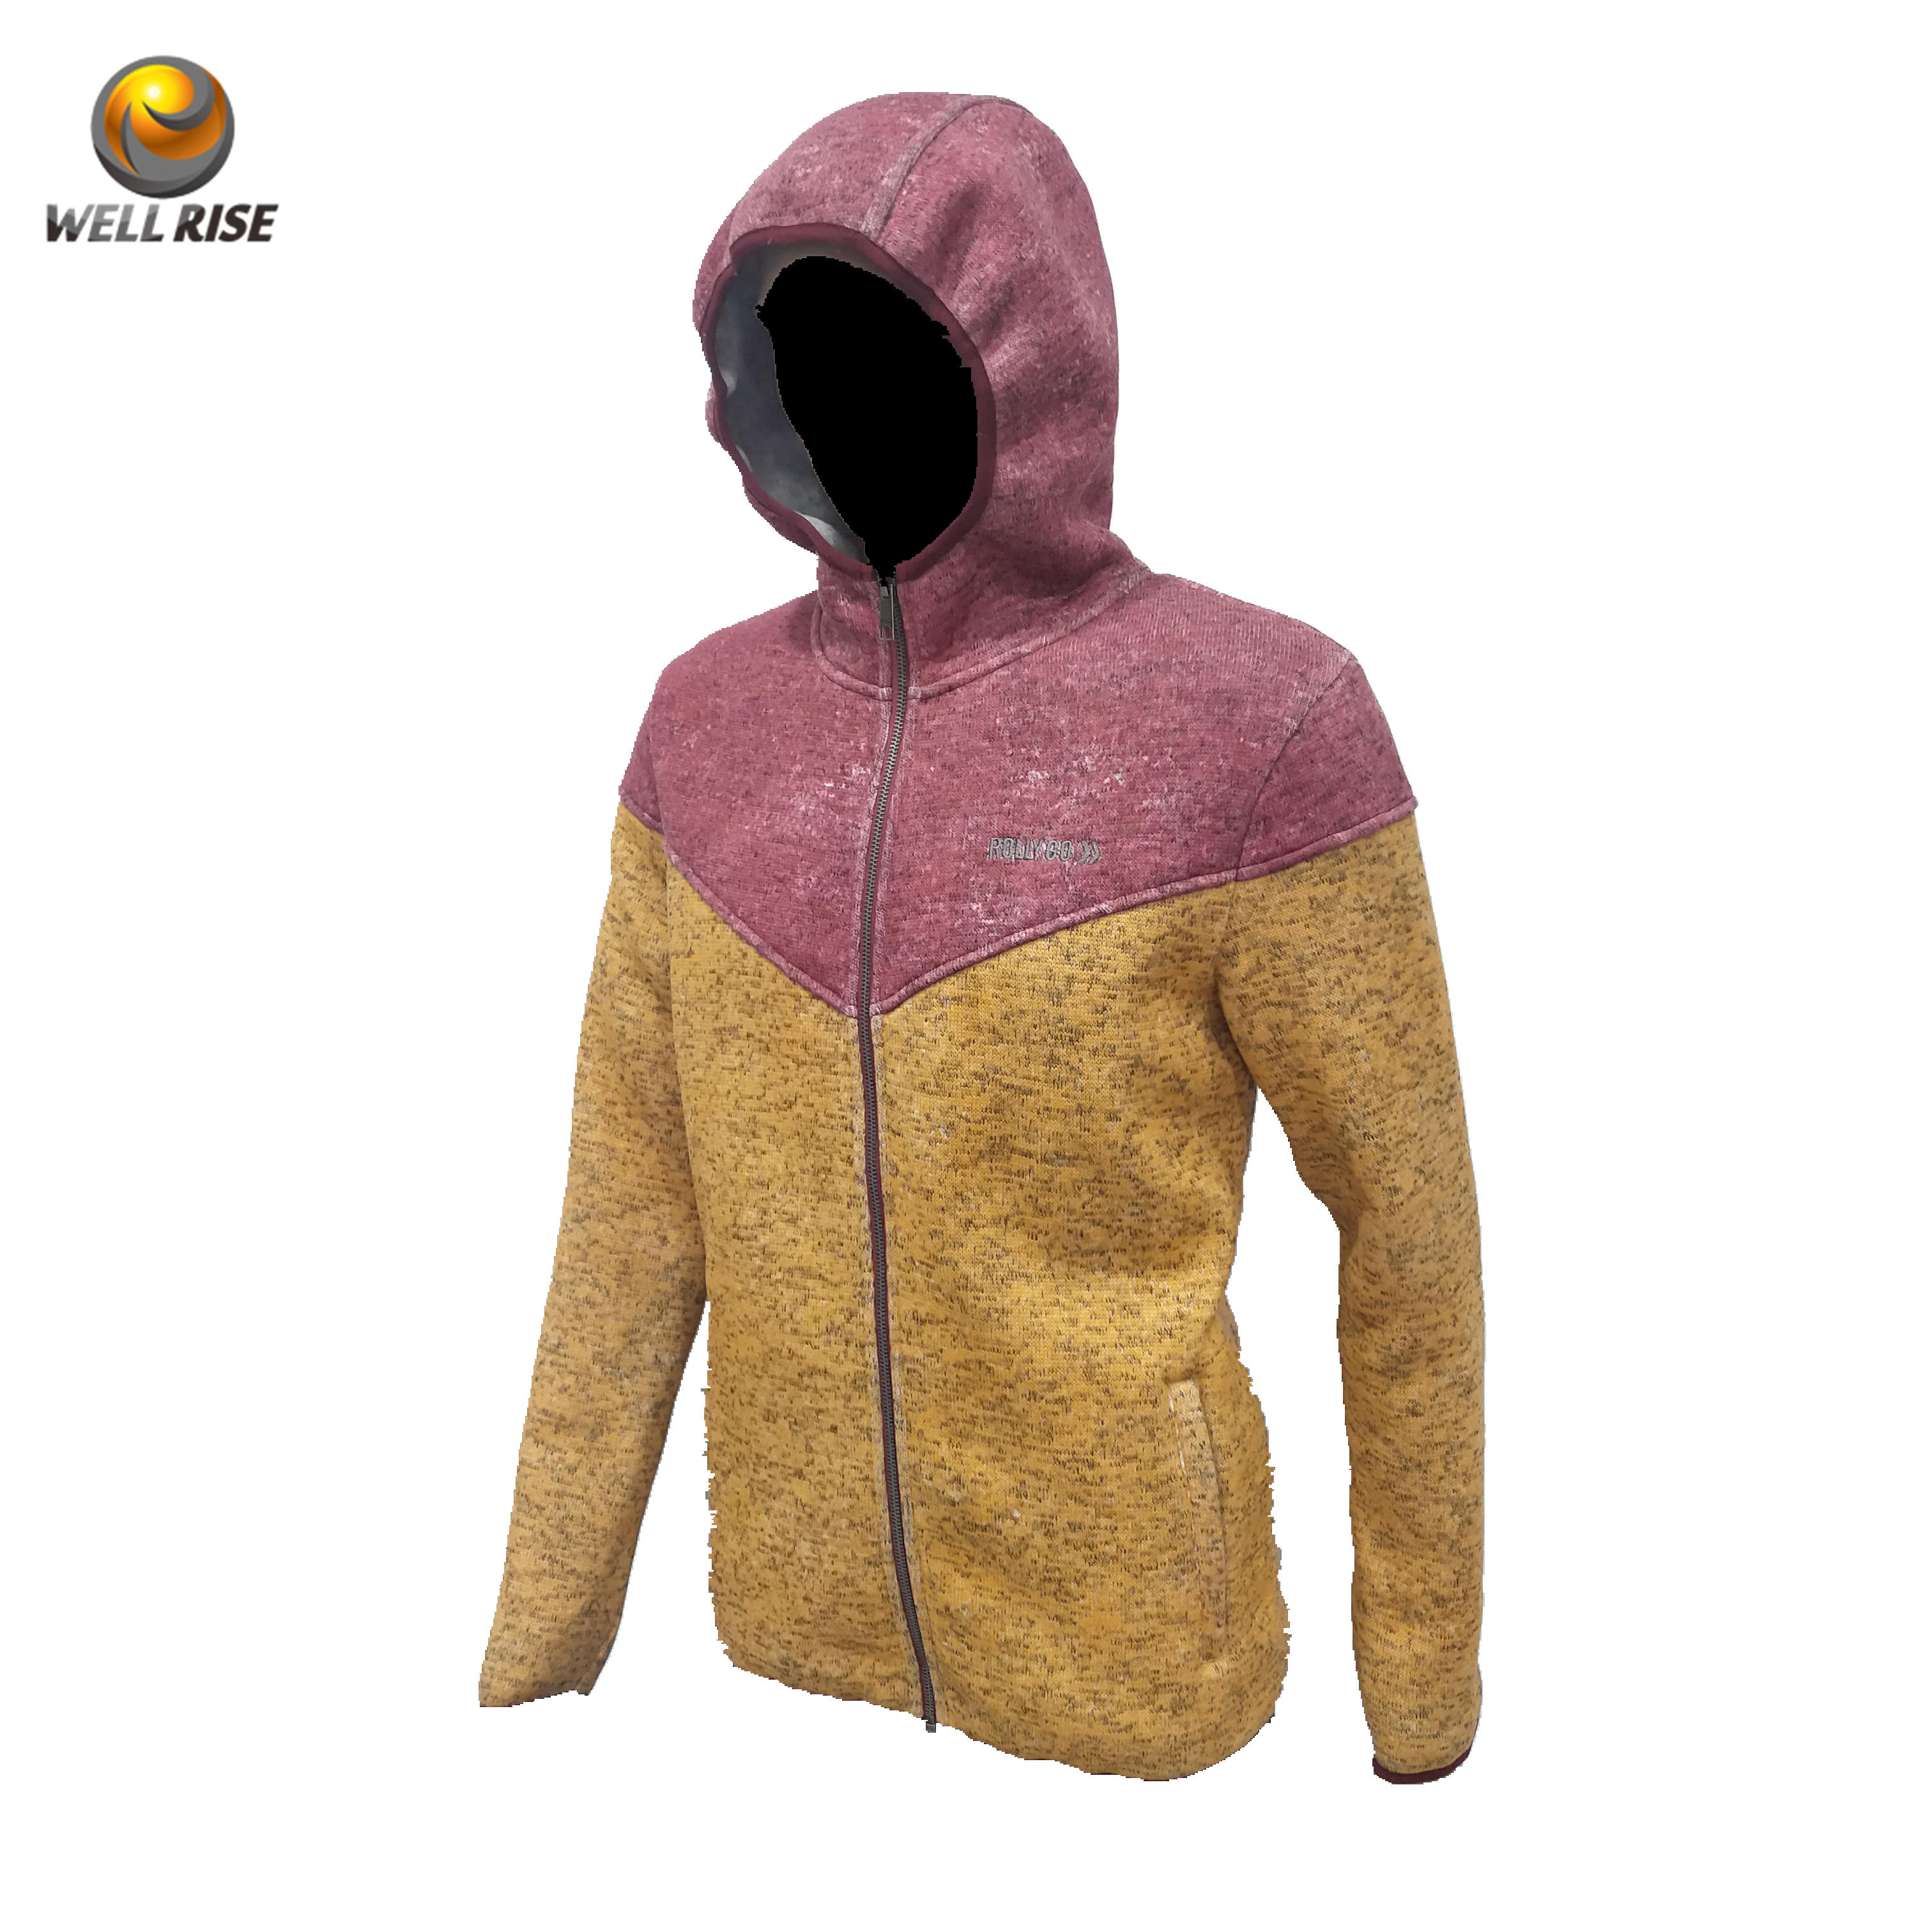 Custom full zip hoodies with fleece gym wear hoodies sportswear high quality hoodies man zipper